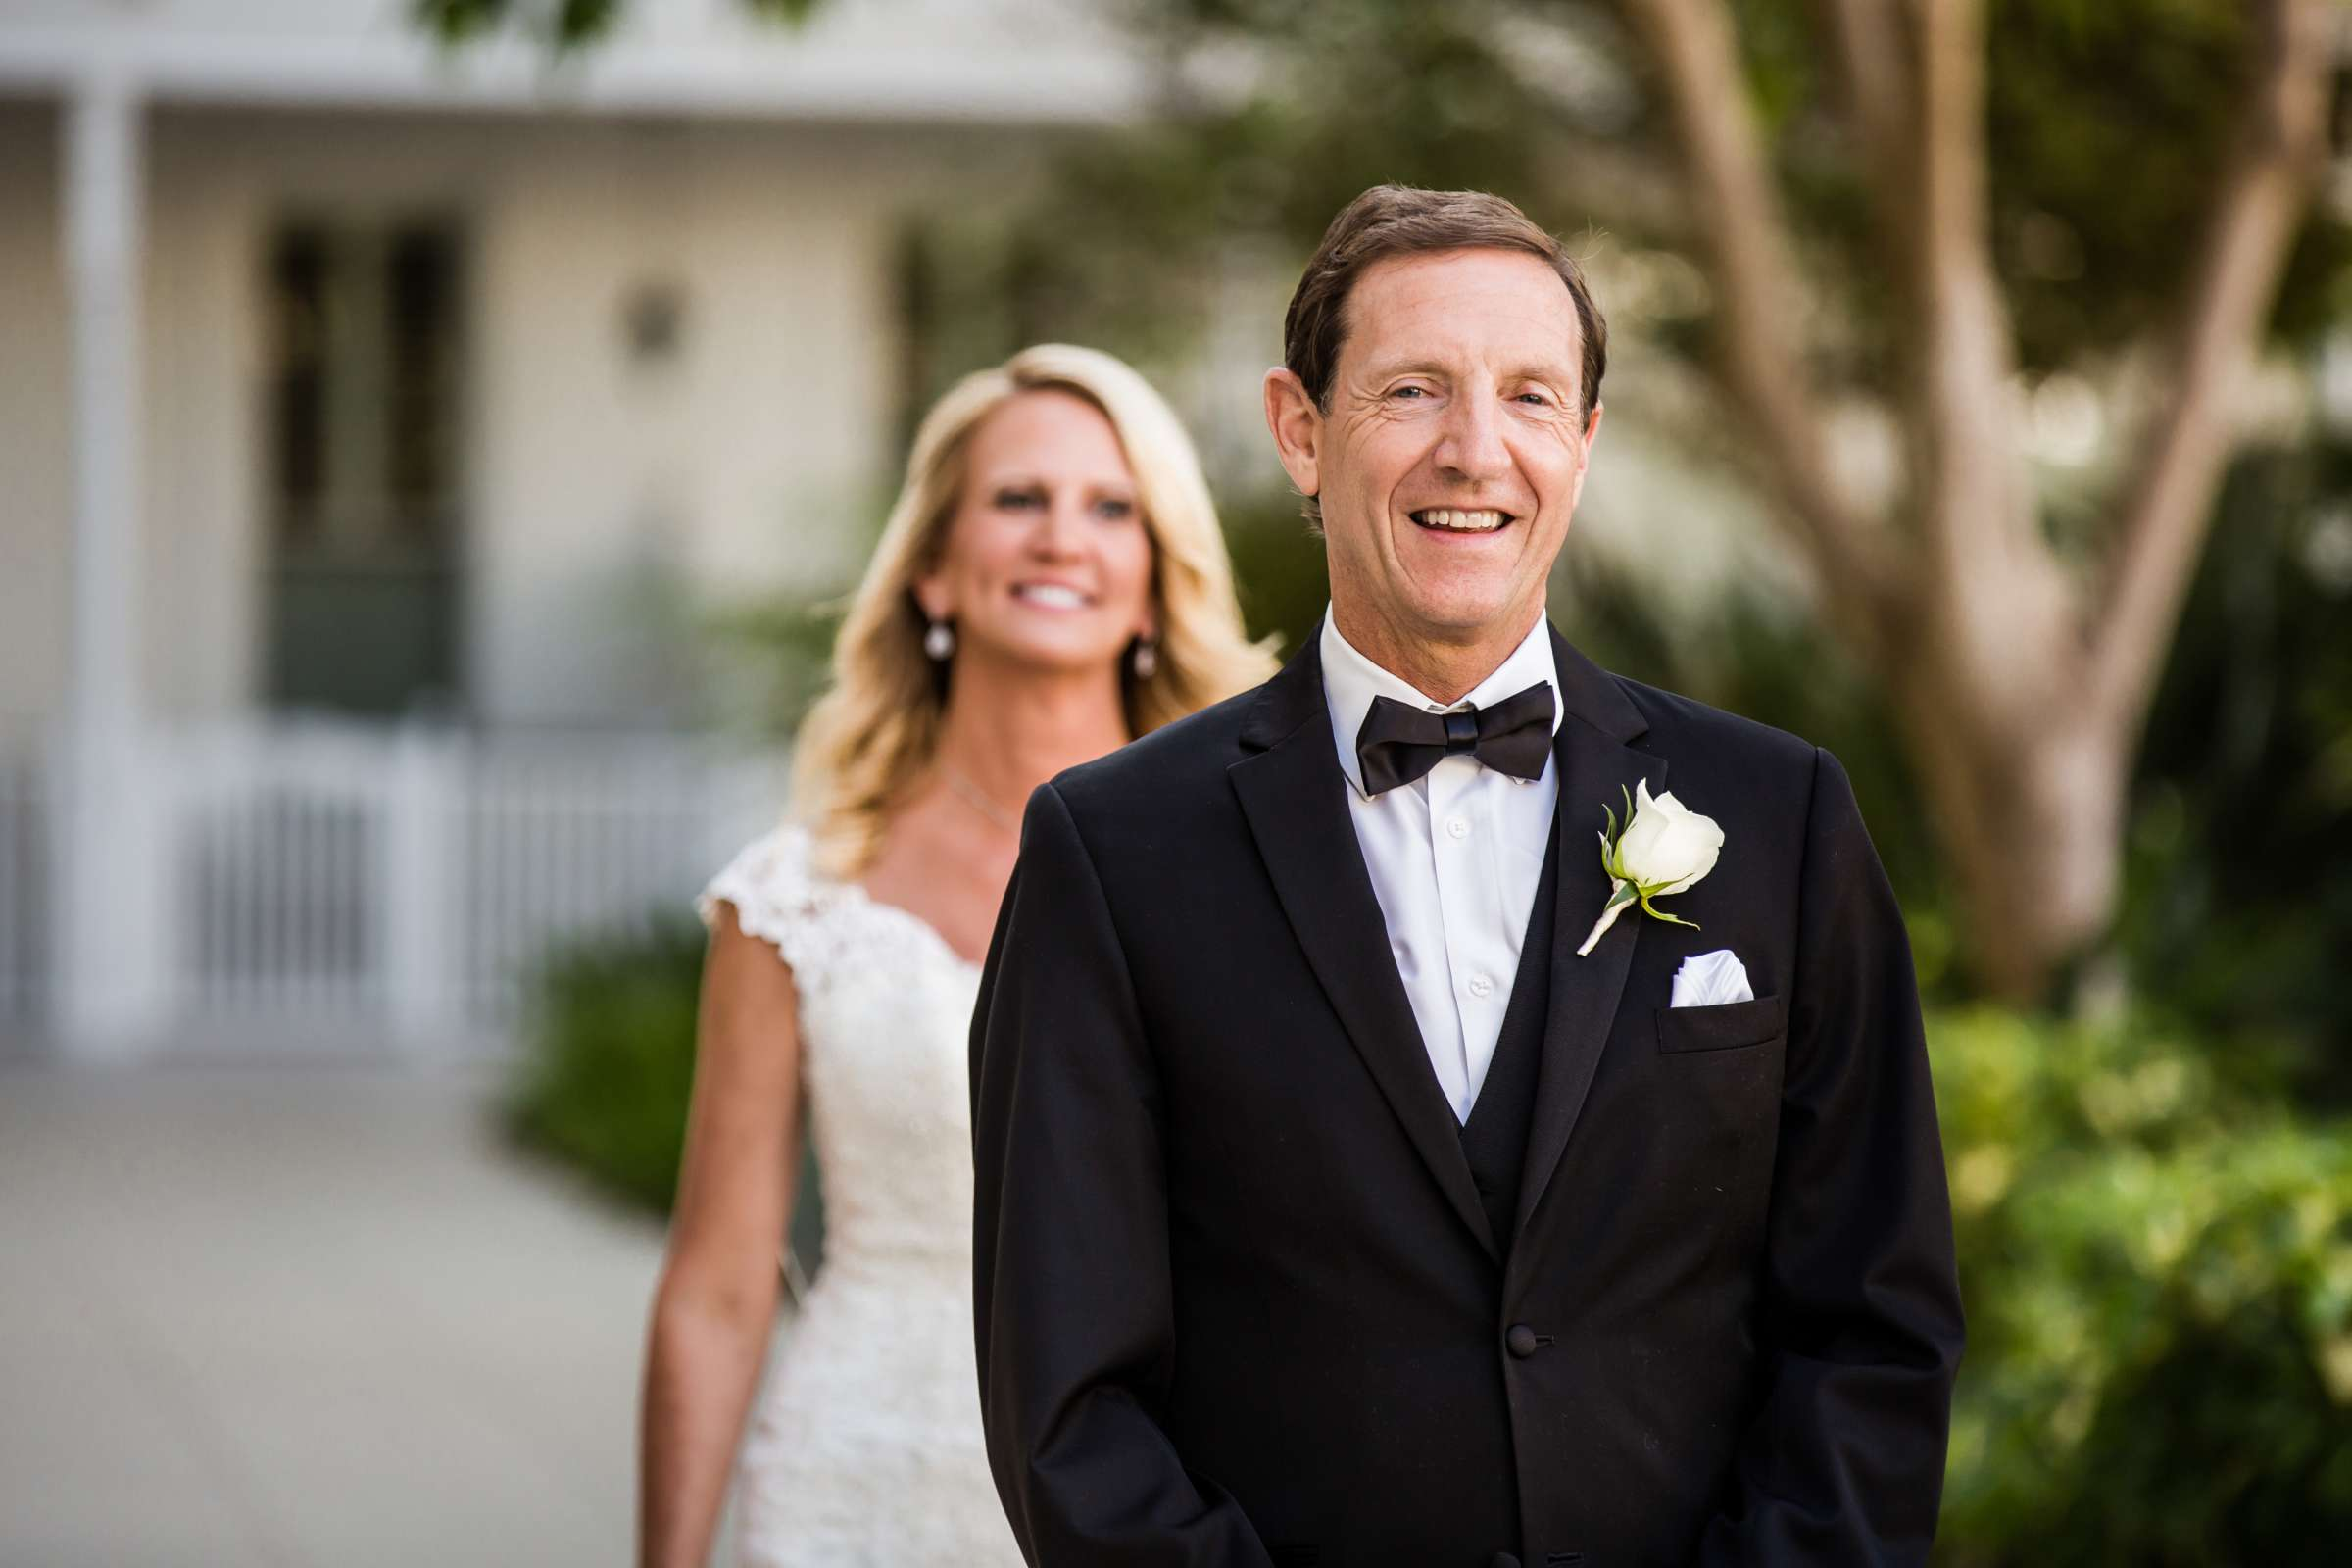 Hotel Del Coronado Wedding coordinated by Creative Affairs Inc, Diane and Paul Wedding Photo #47 by True Photography